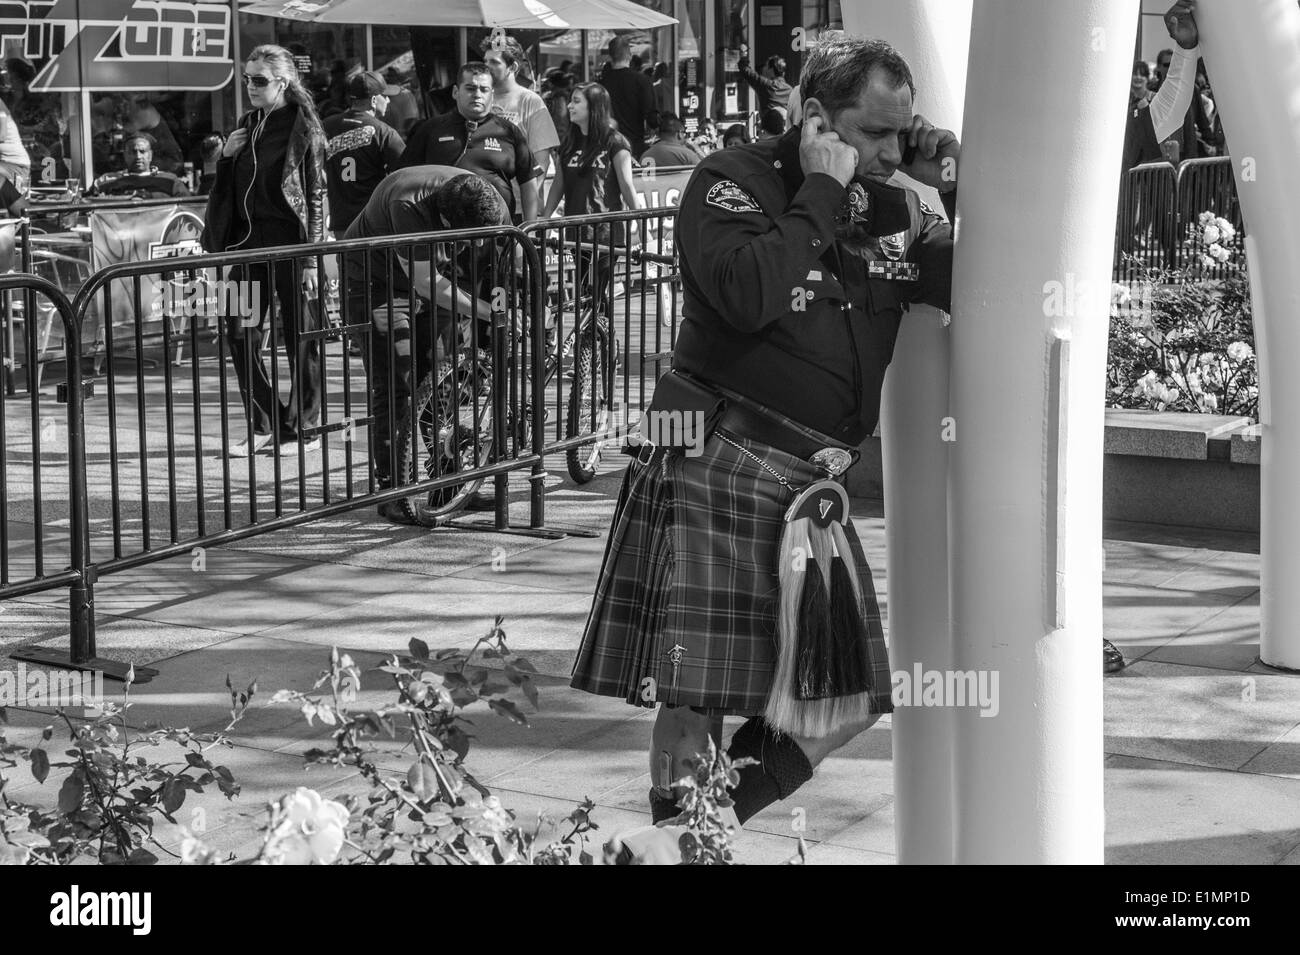 Los Angeles Police Officer talking on mobile phone wearing kilt on St. Patrick's Day. - Stock Image